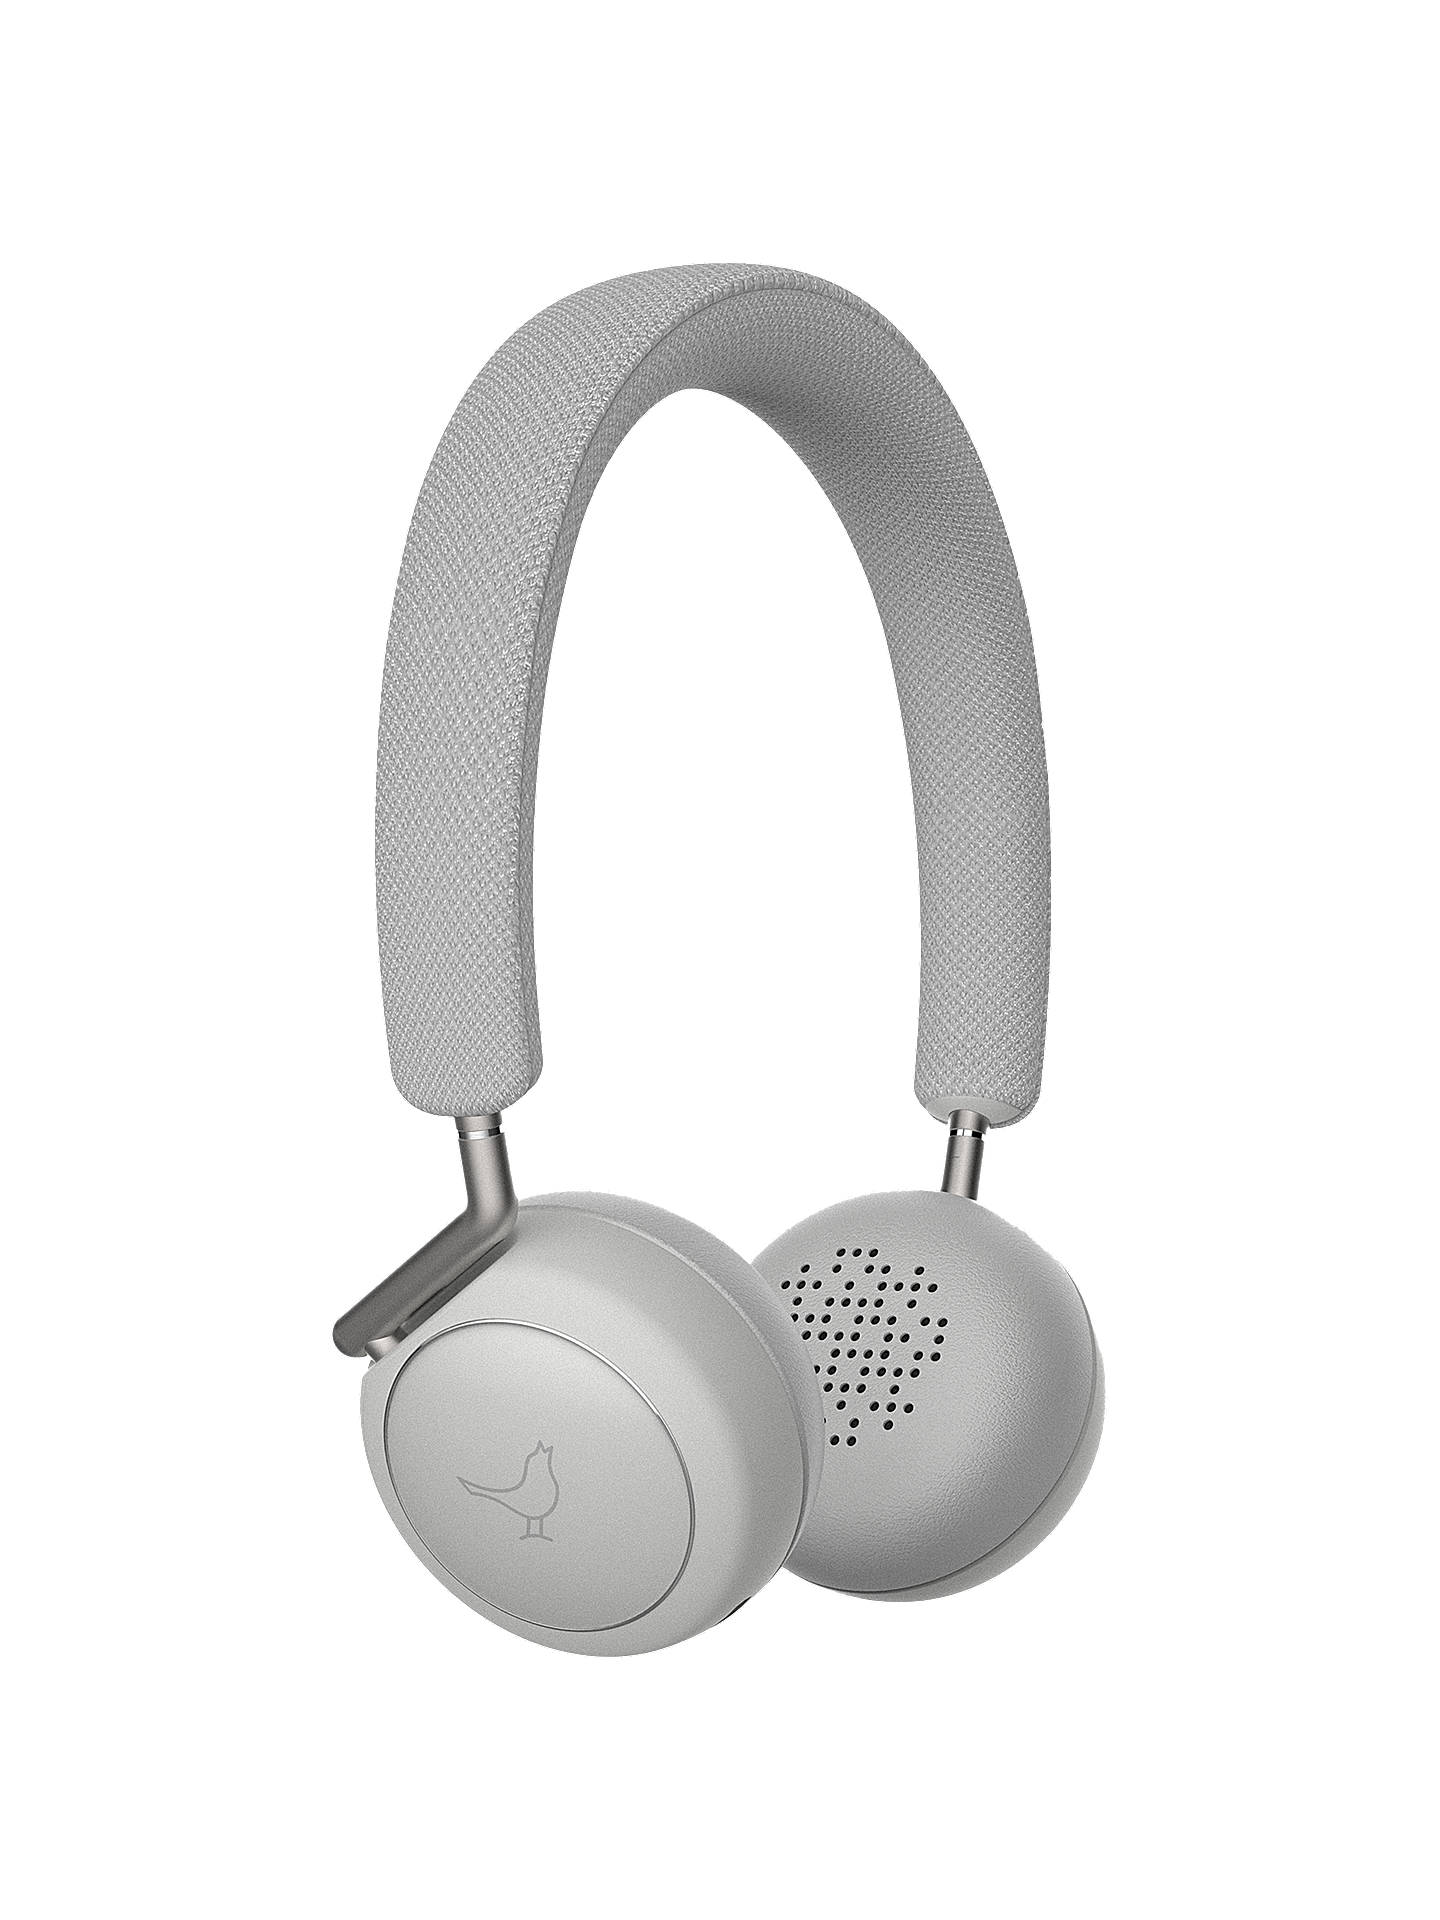 BuyLibratone Q Adapt Noise Cancelling Wireless Bluetooth On Ear Headphones with Mic/Remote, Cloudy White Online at johnlewis.com